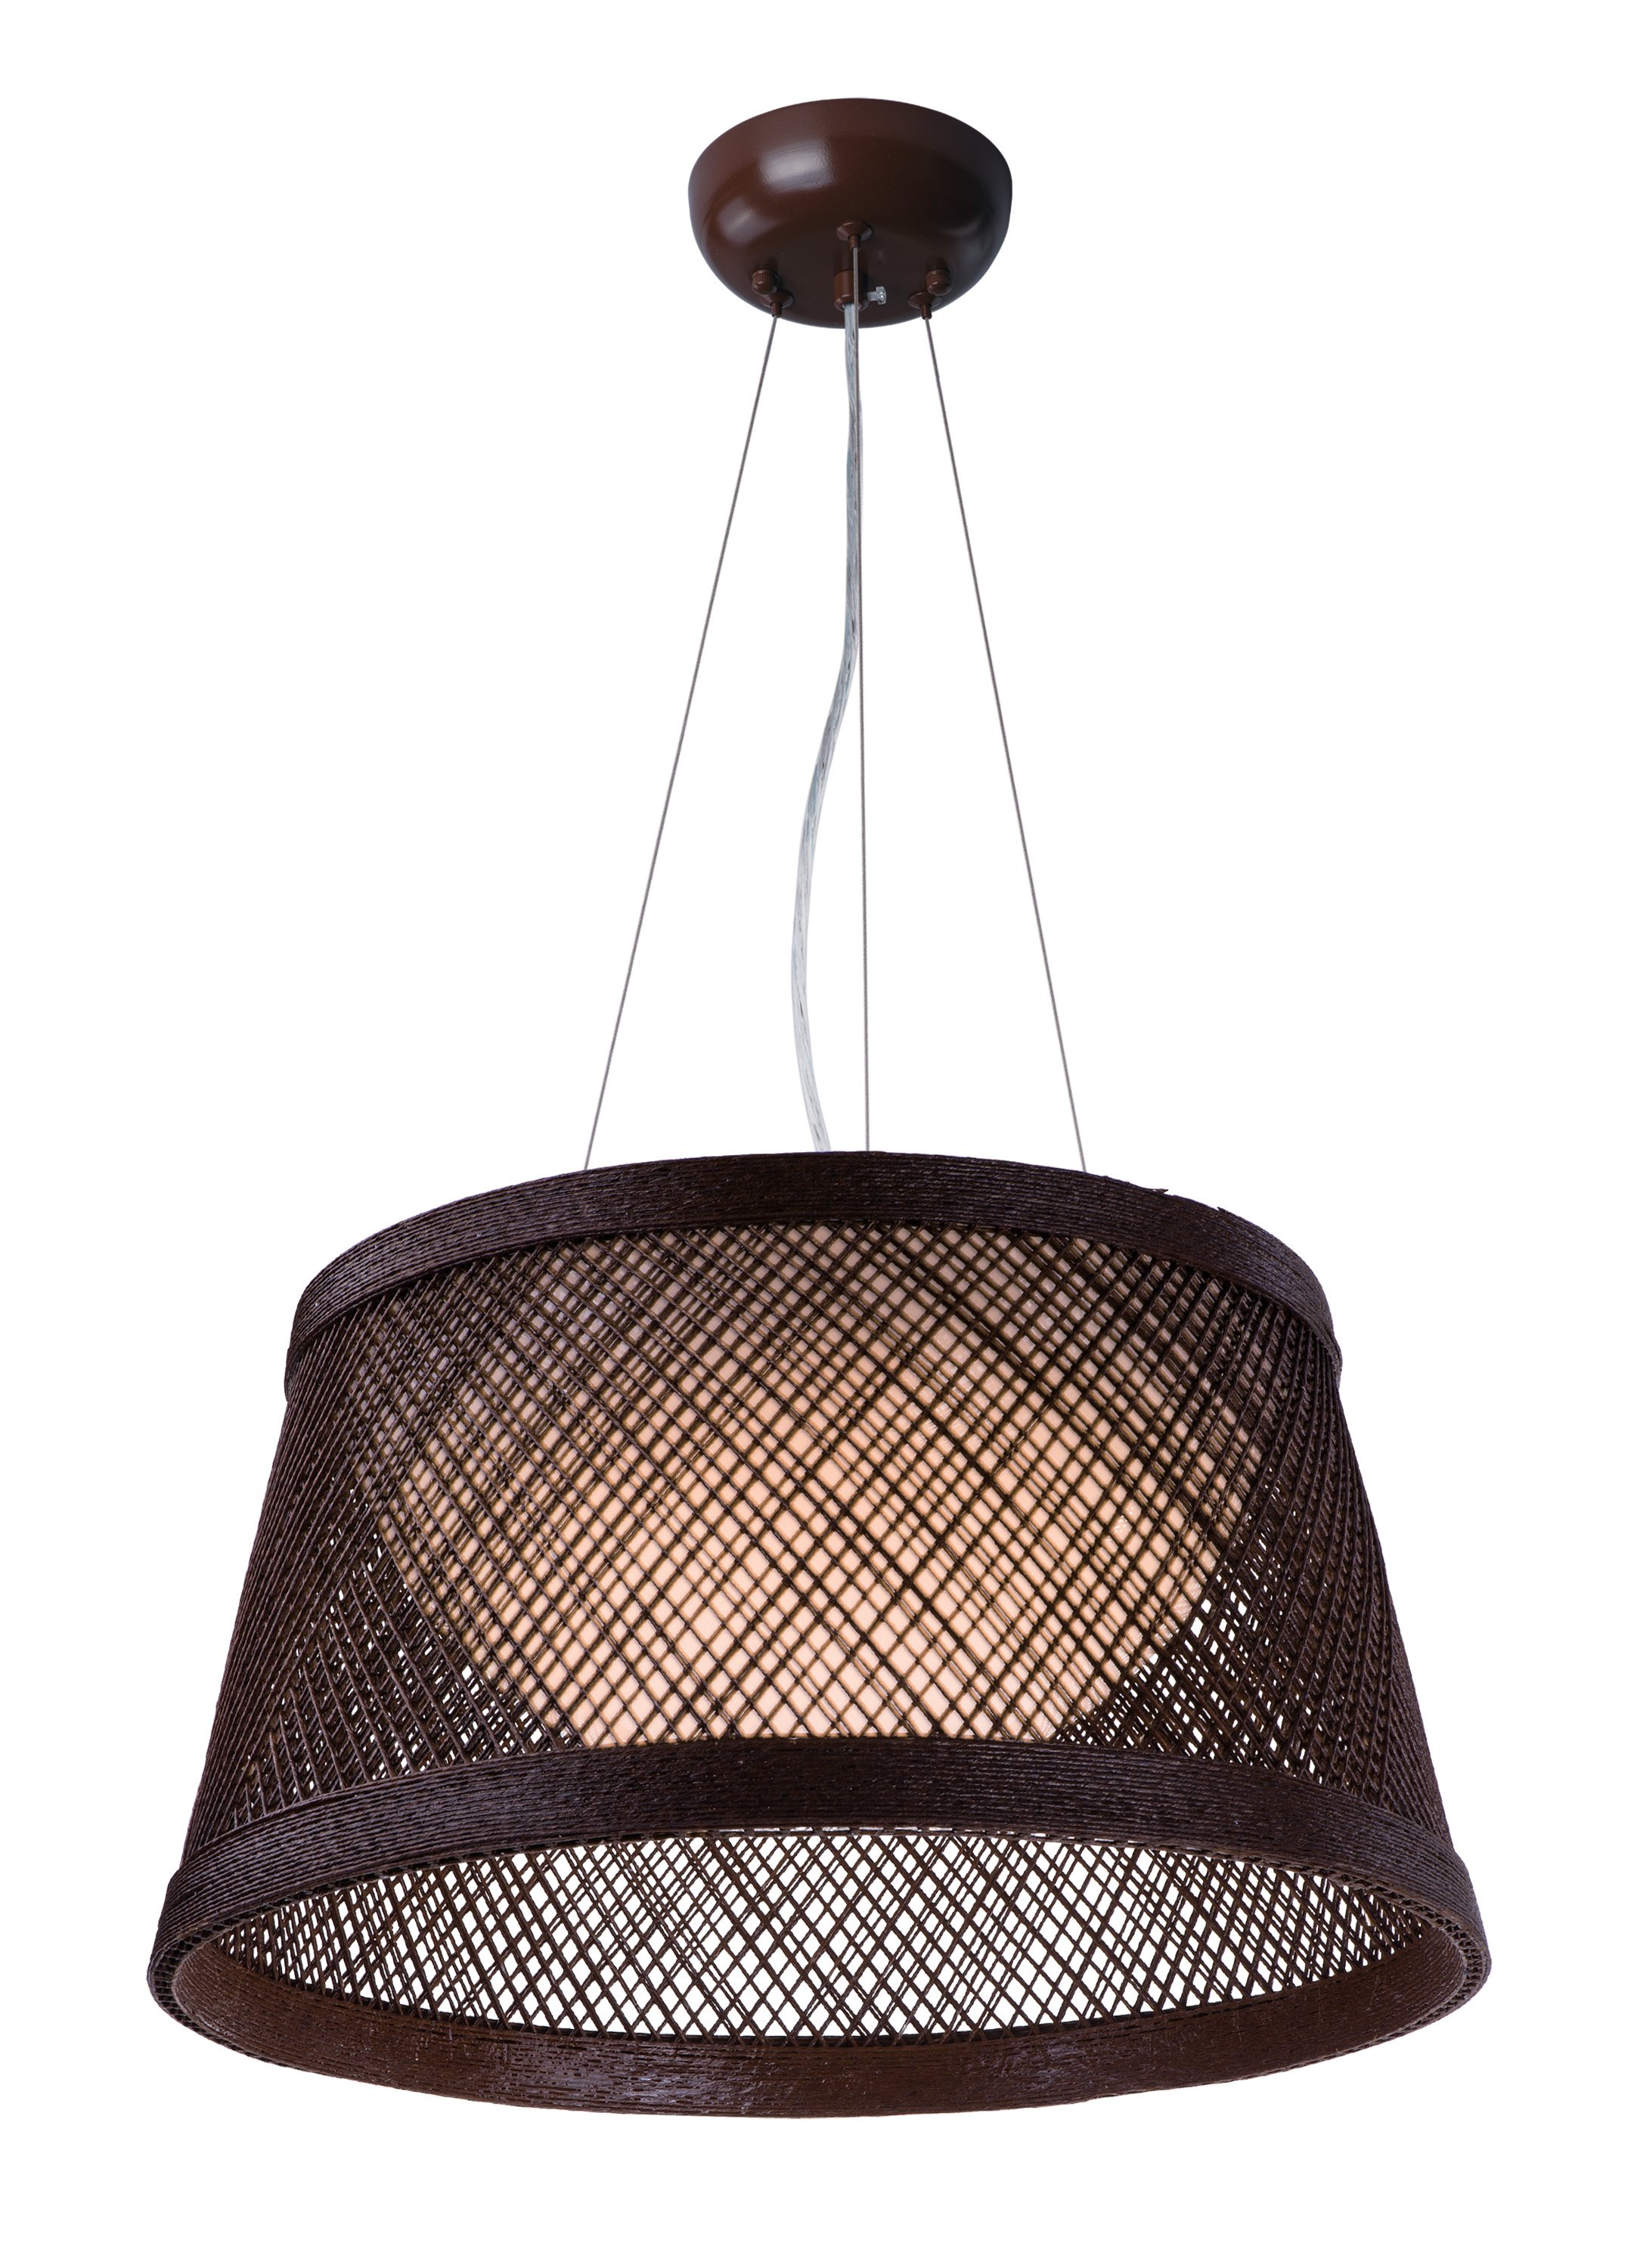 chaos pendants single canada ultra fixtures pc lighting pendant